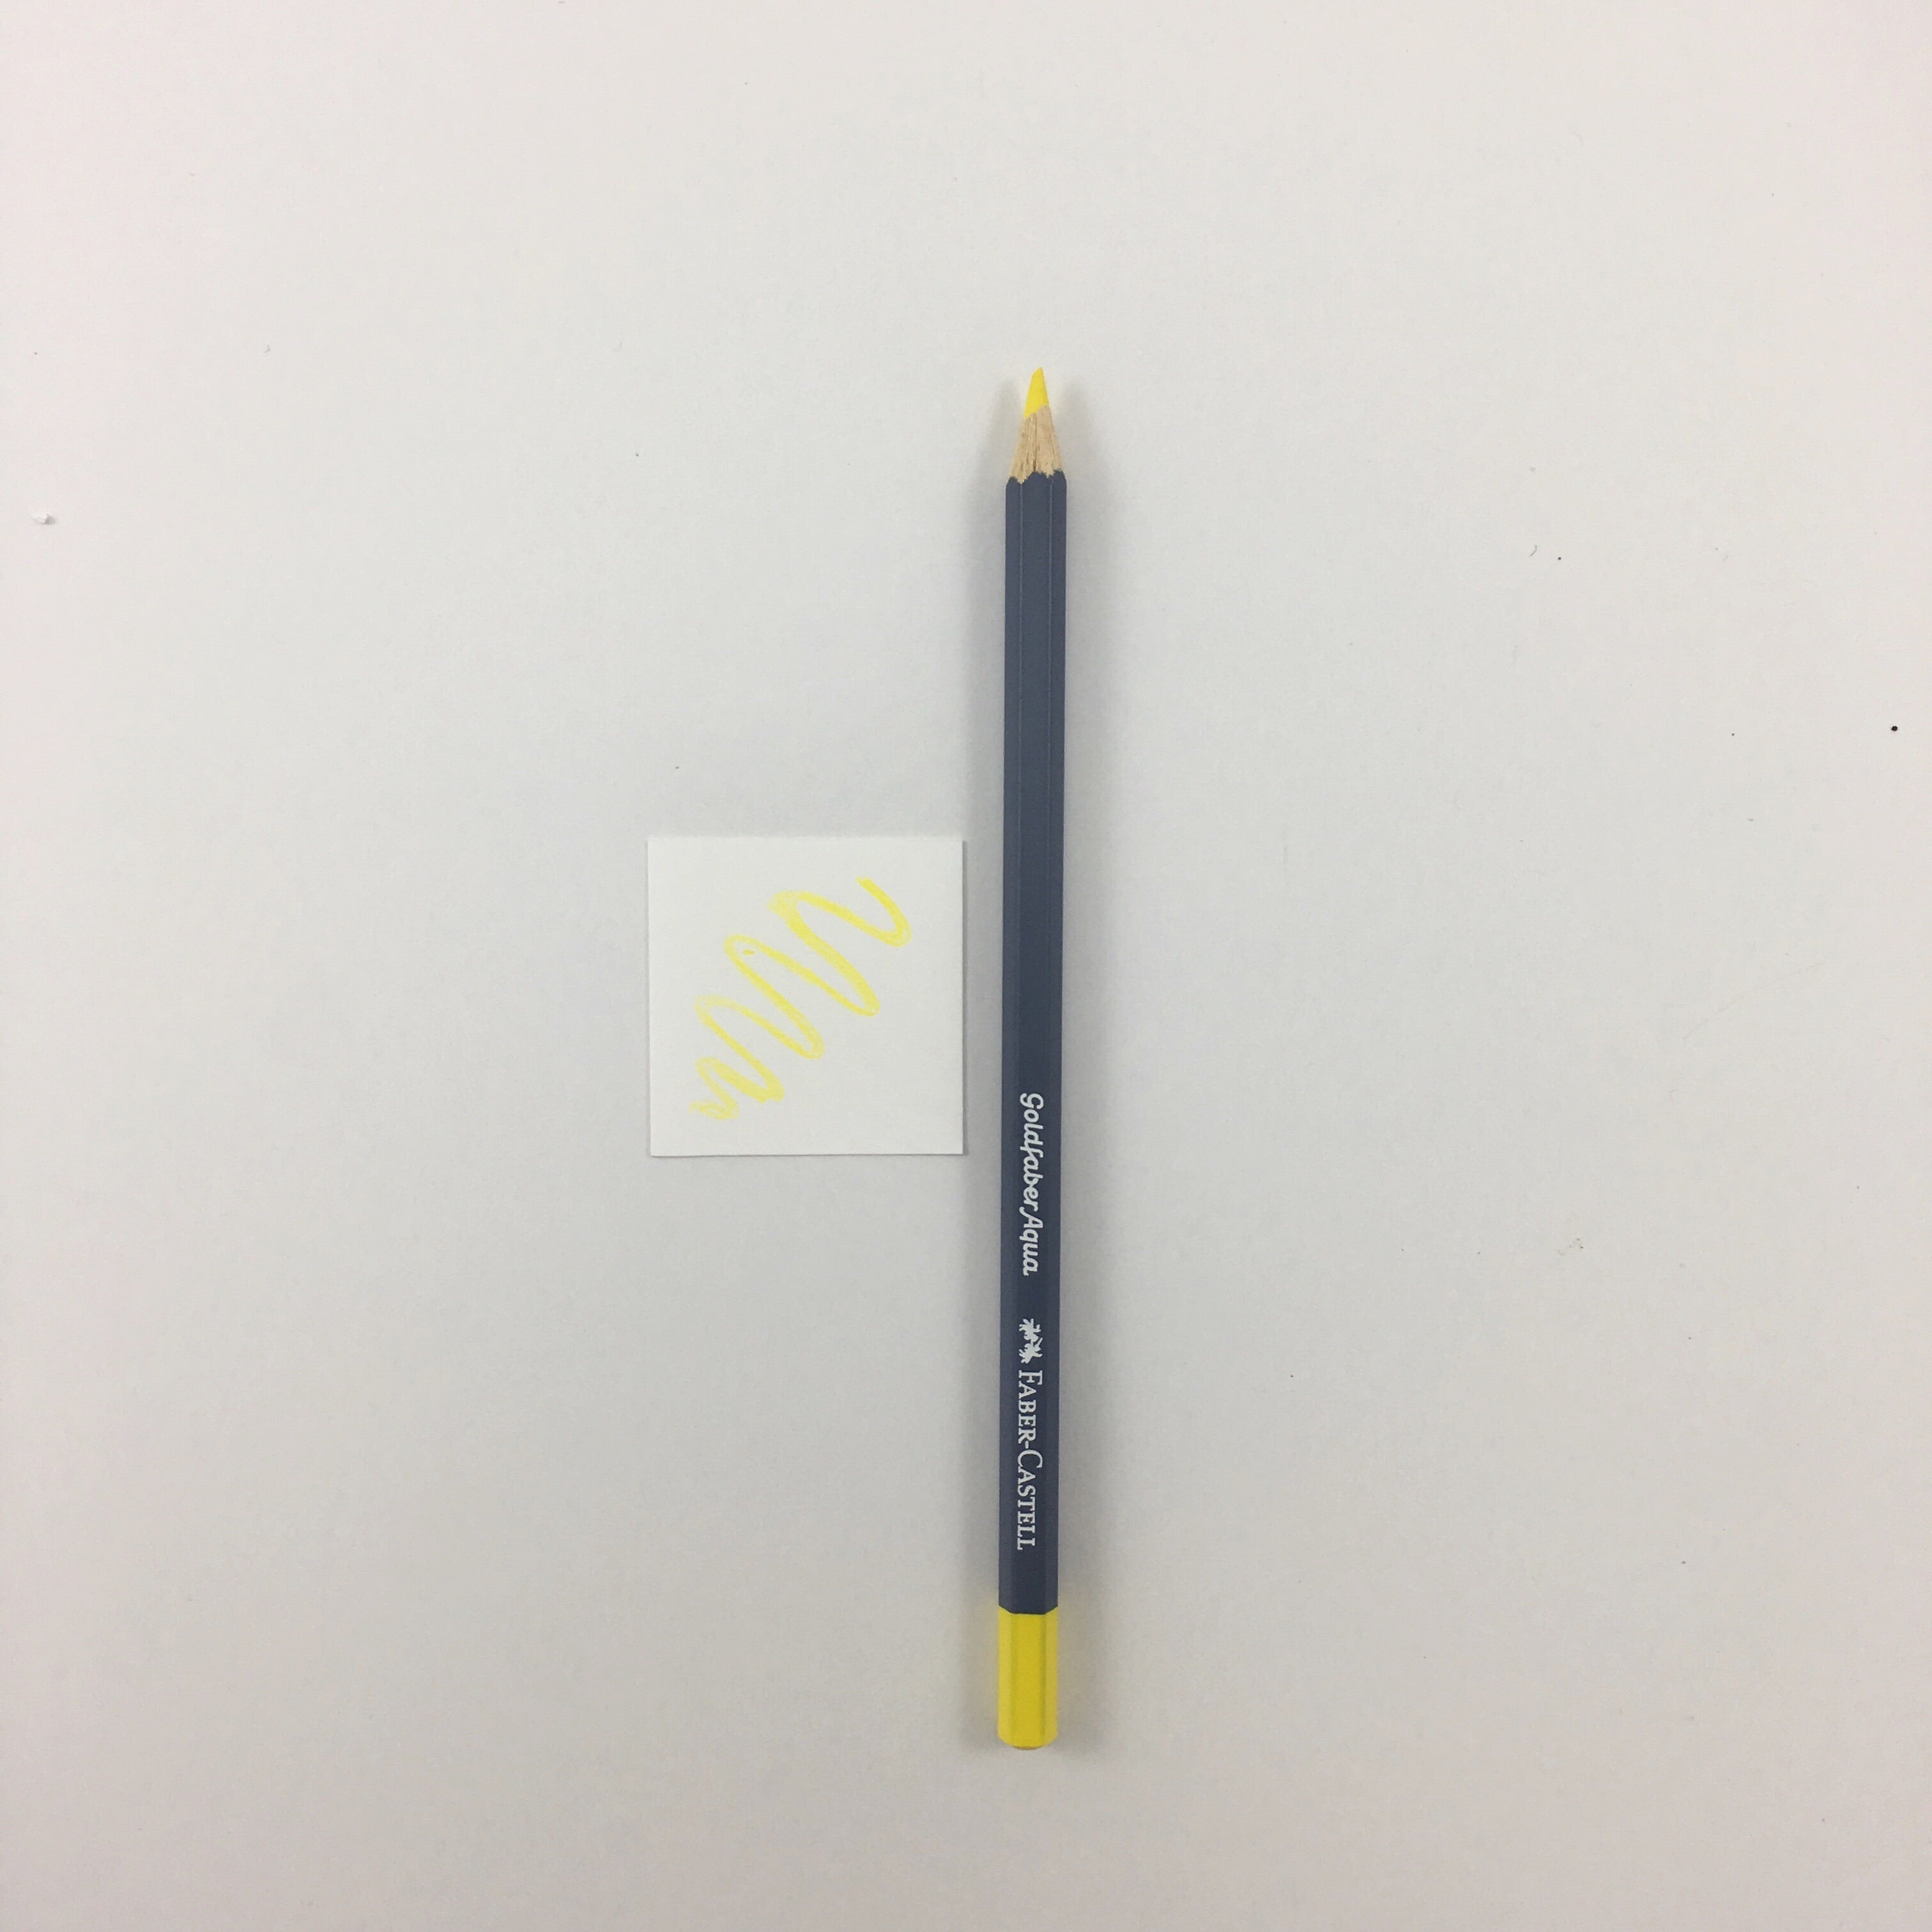 Faber-Castell Goldfaber Aqua Watercolor Pencils - Individuals - 104 - Light Yellow Glaze by Faber-Castell - K. A. Artist Shop